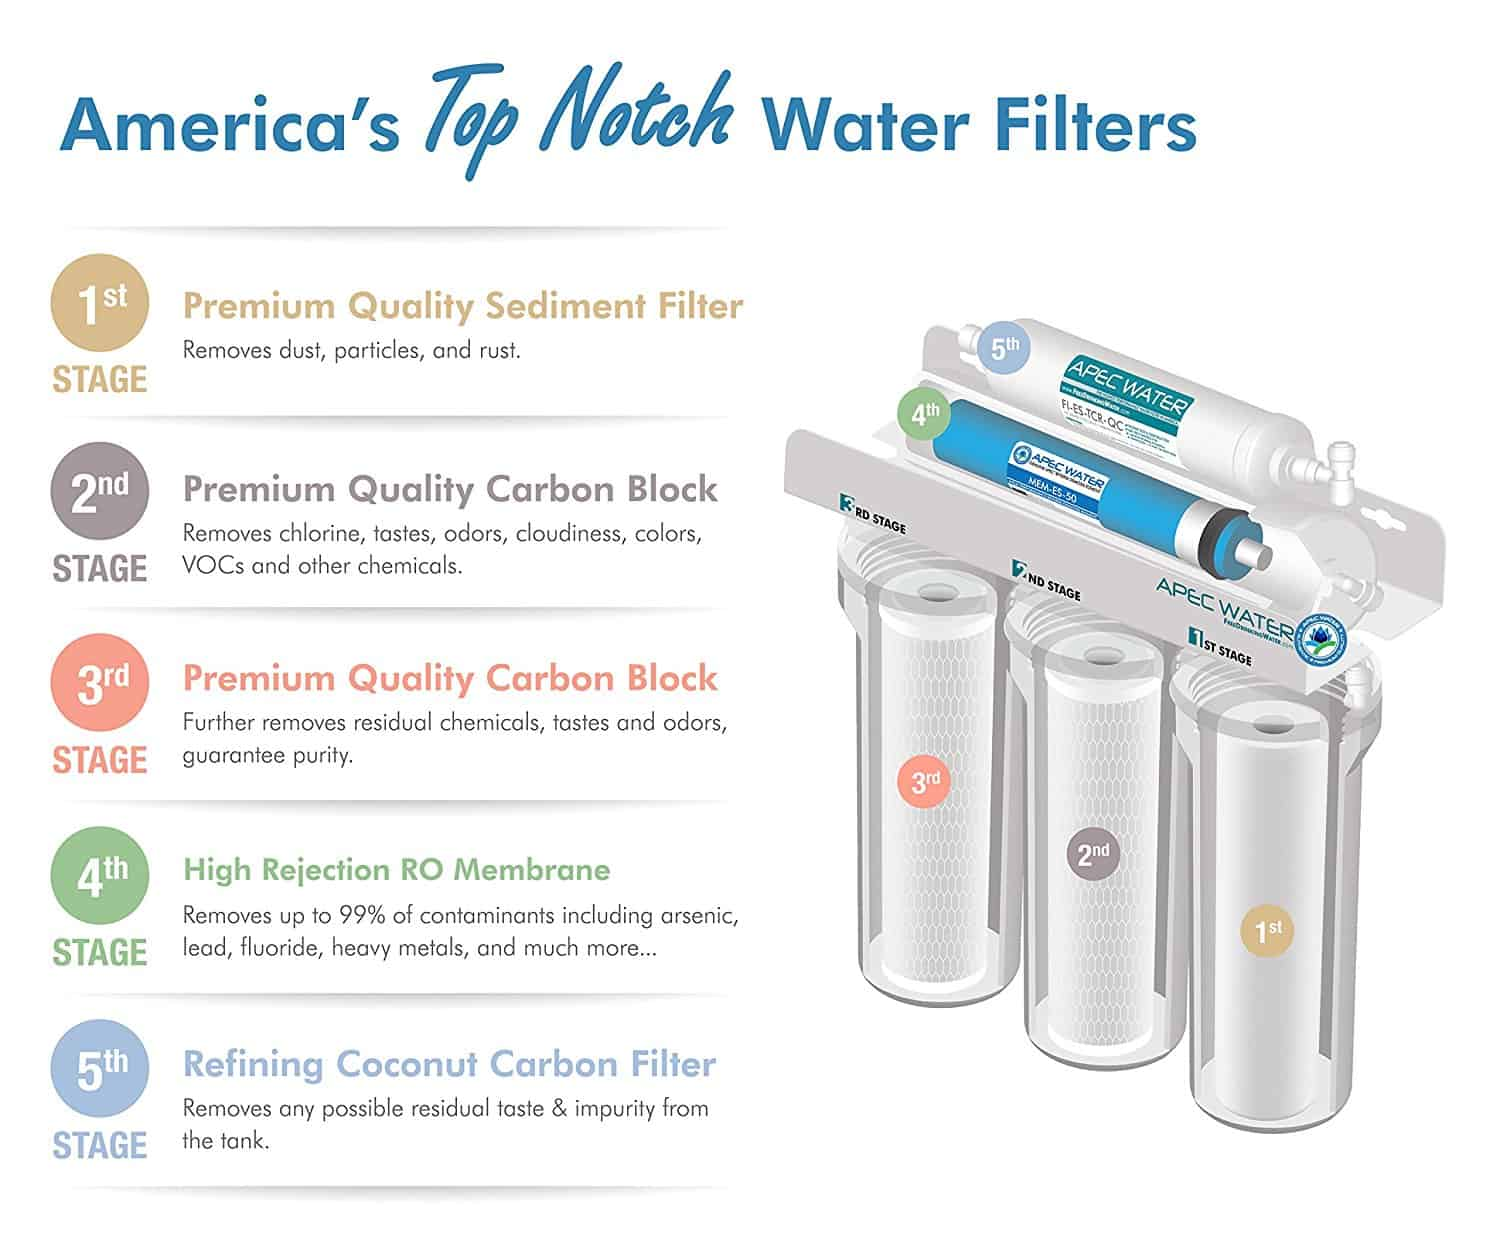 Apec Roes 50 Review World Of Water Filter